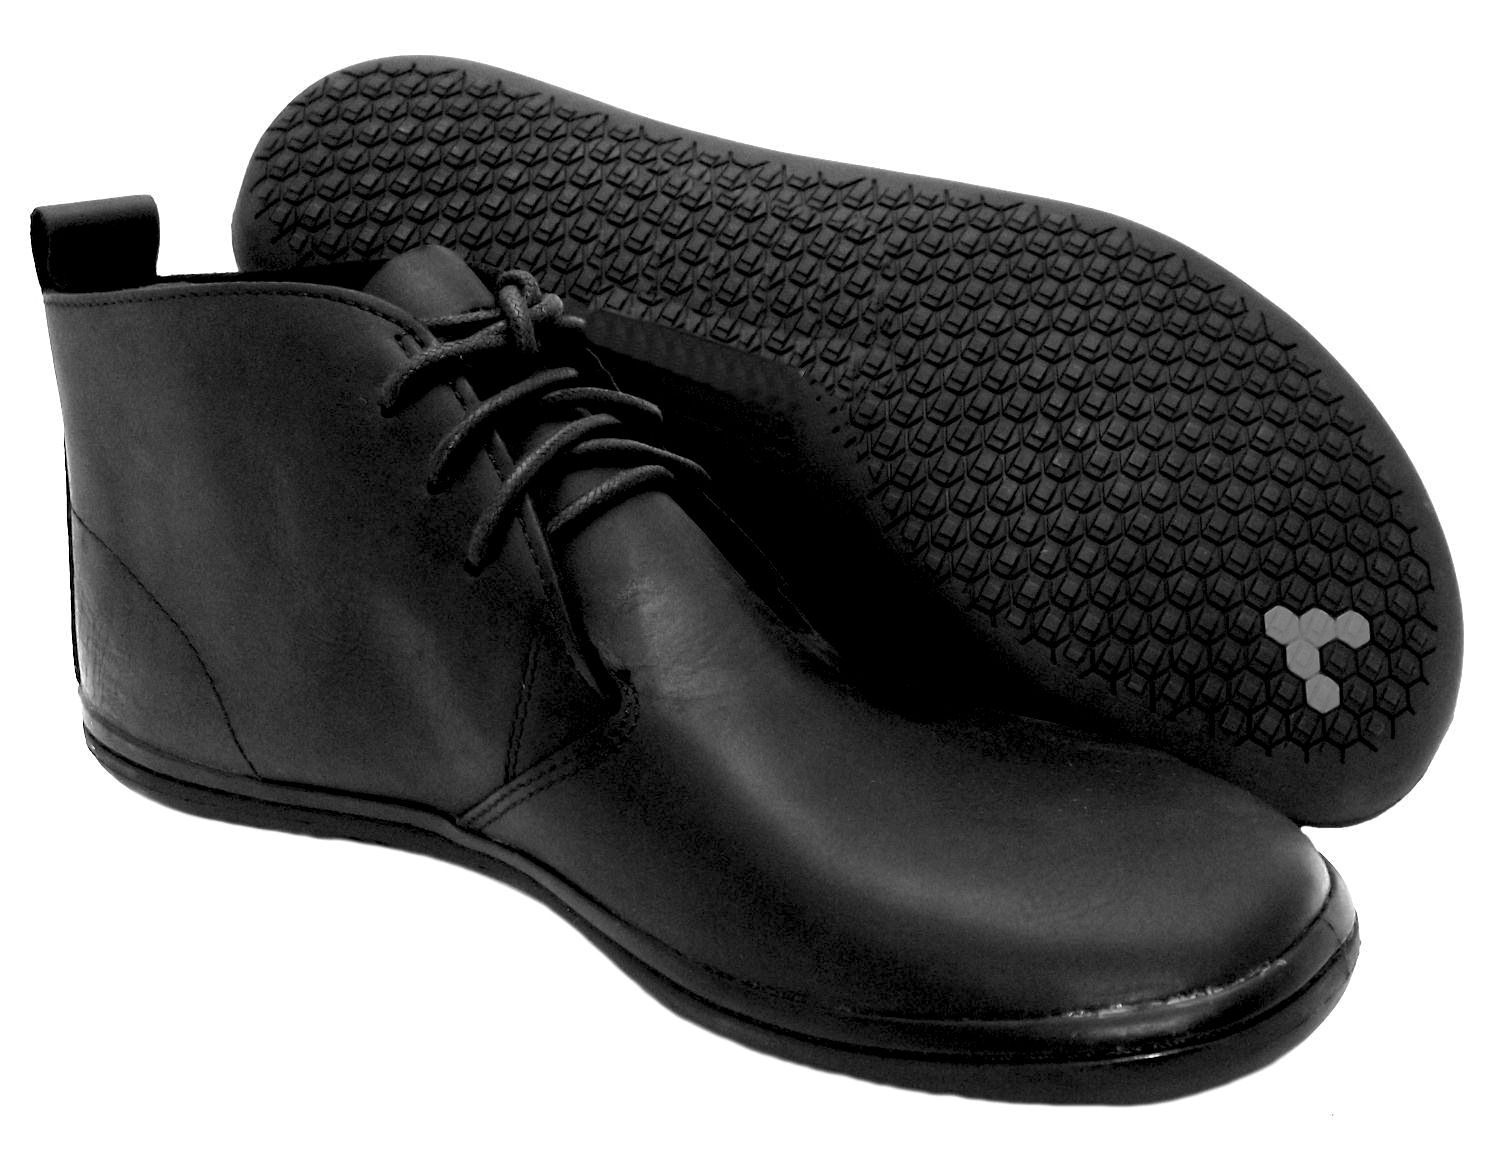 Minimalist Shoes For The Office Barefoot Shoes Barefoot Shoes